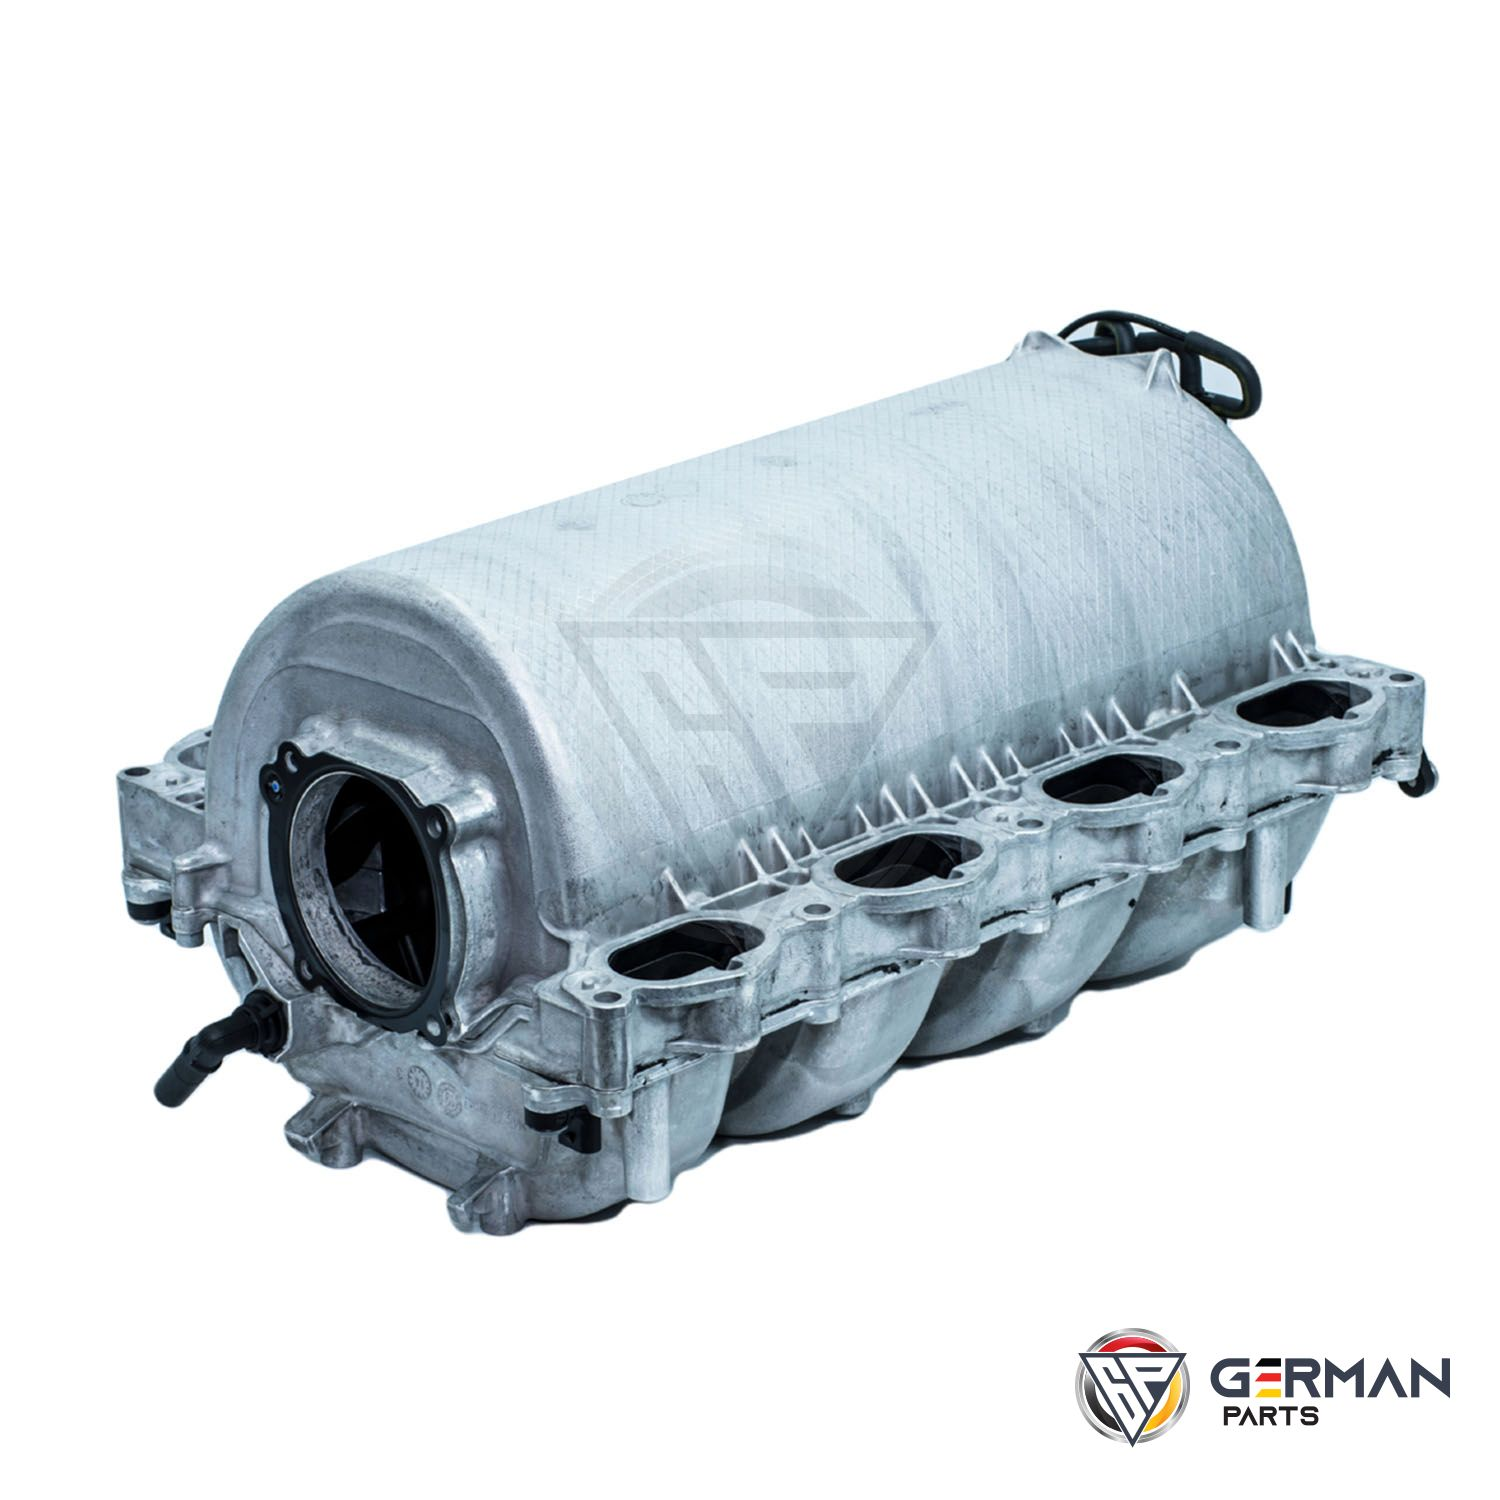 Buy Pierburg Intake Manifold 2731400701 - German Parts